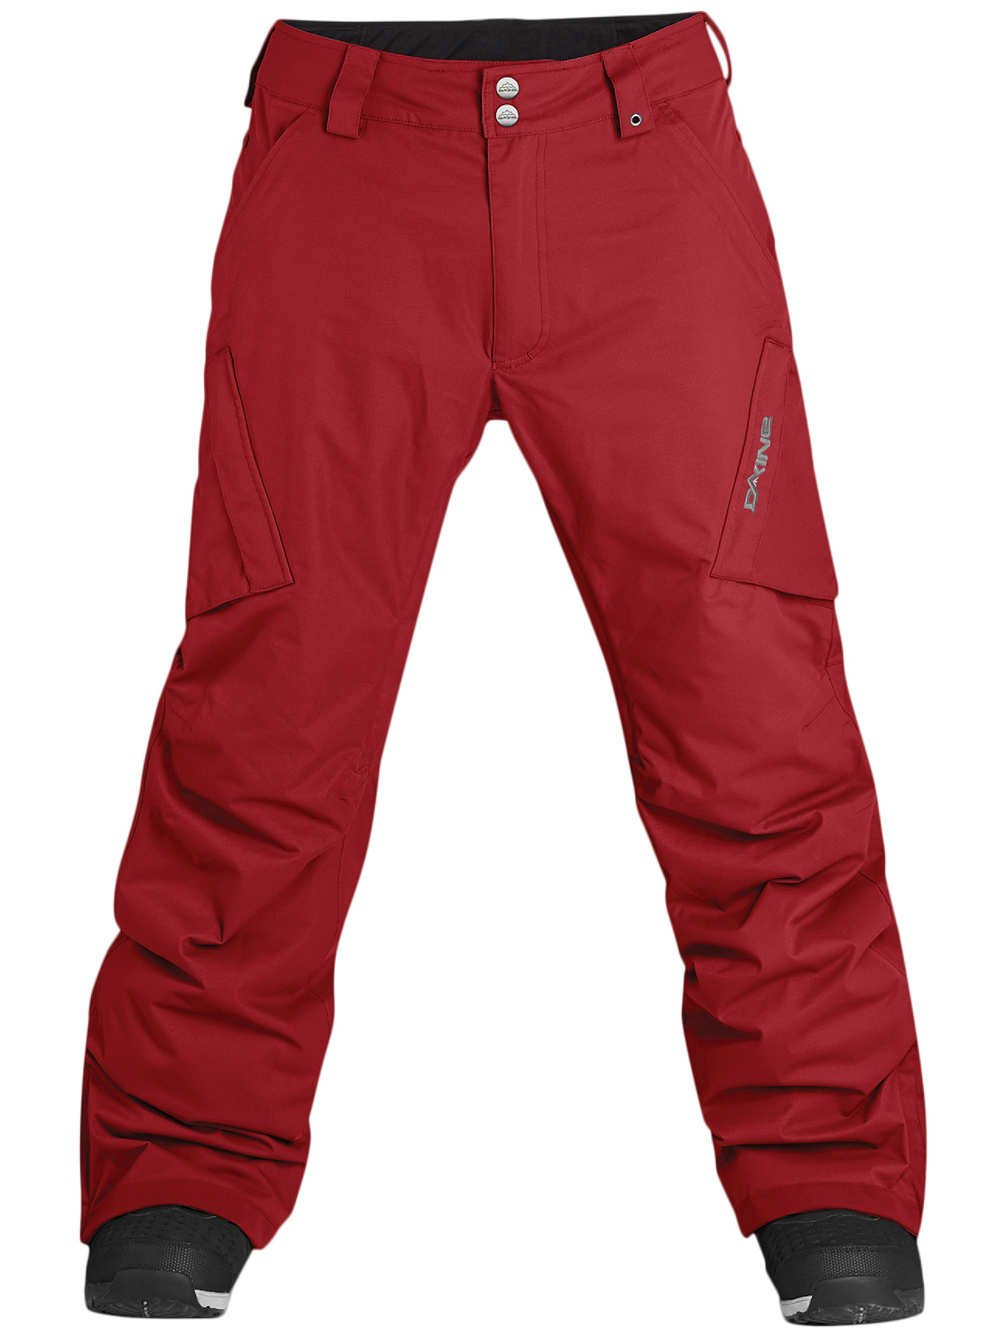 Da Kine Herren Snowboardhose